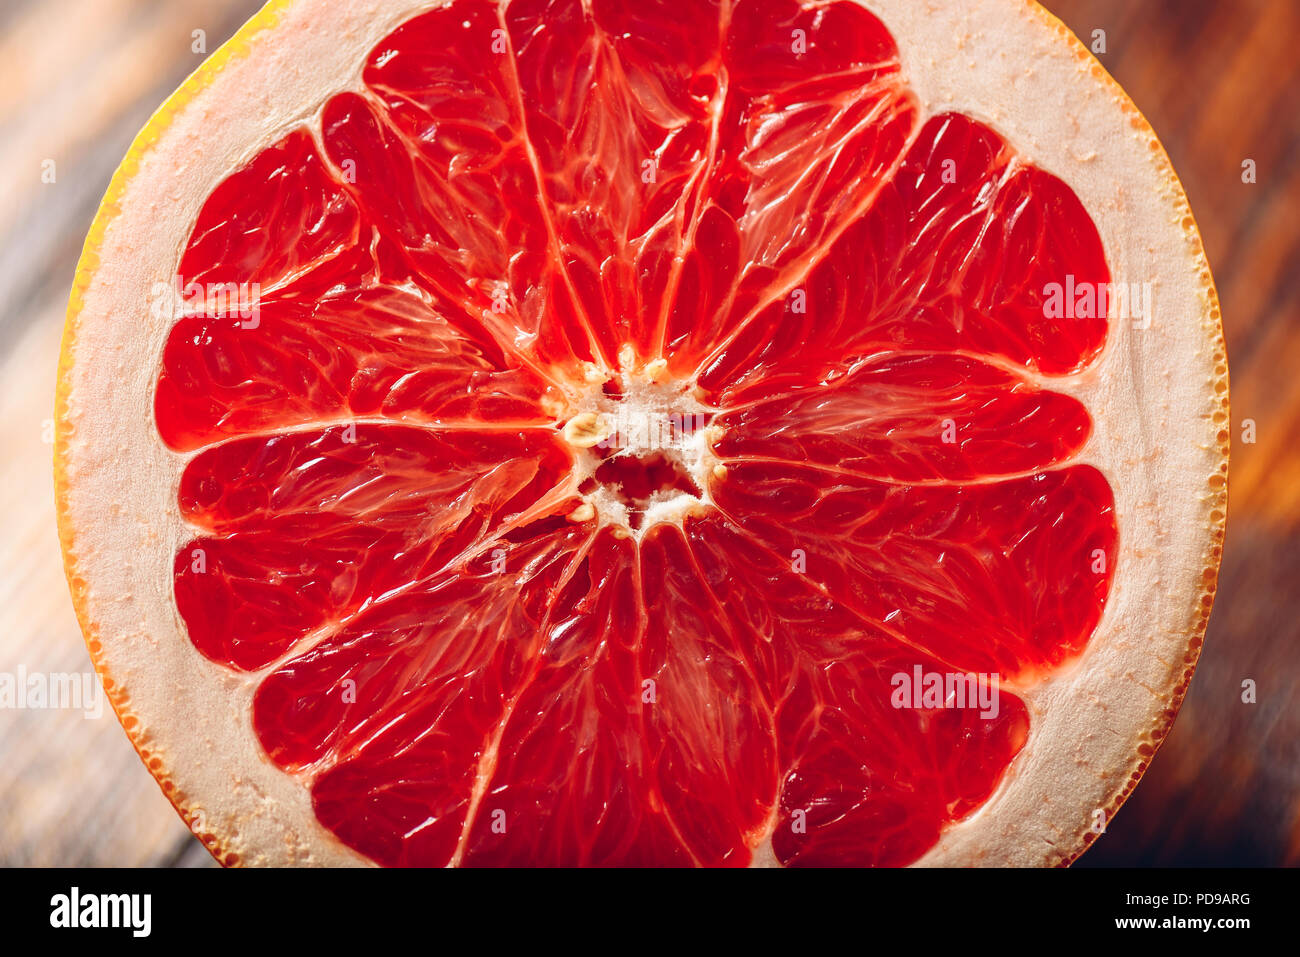 Half of Ripe and Juicy Grapefruit on Wooden Table. Stock Photo